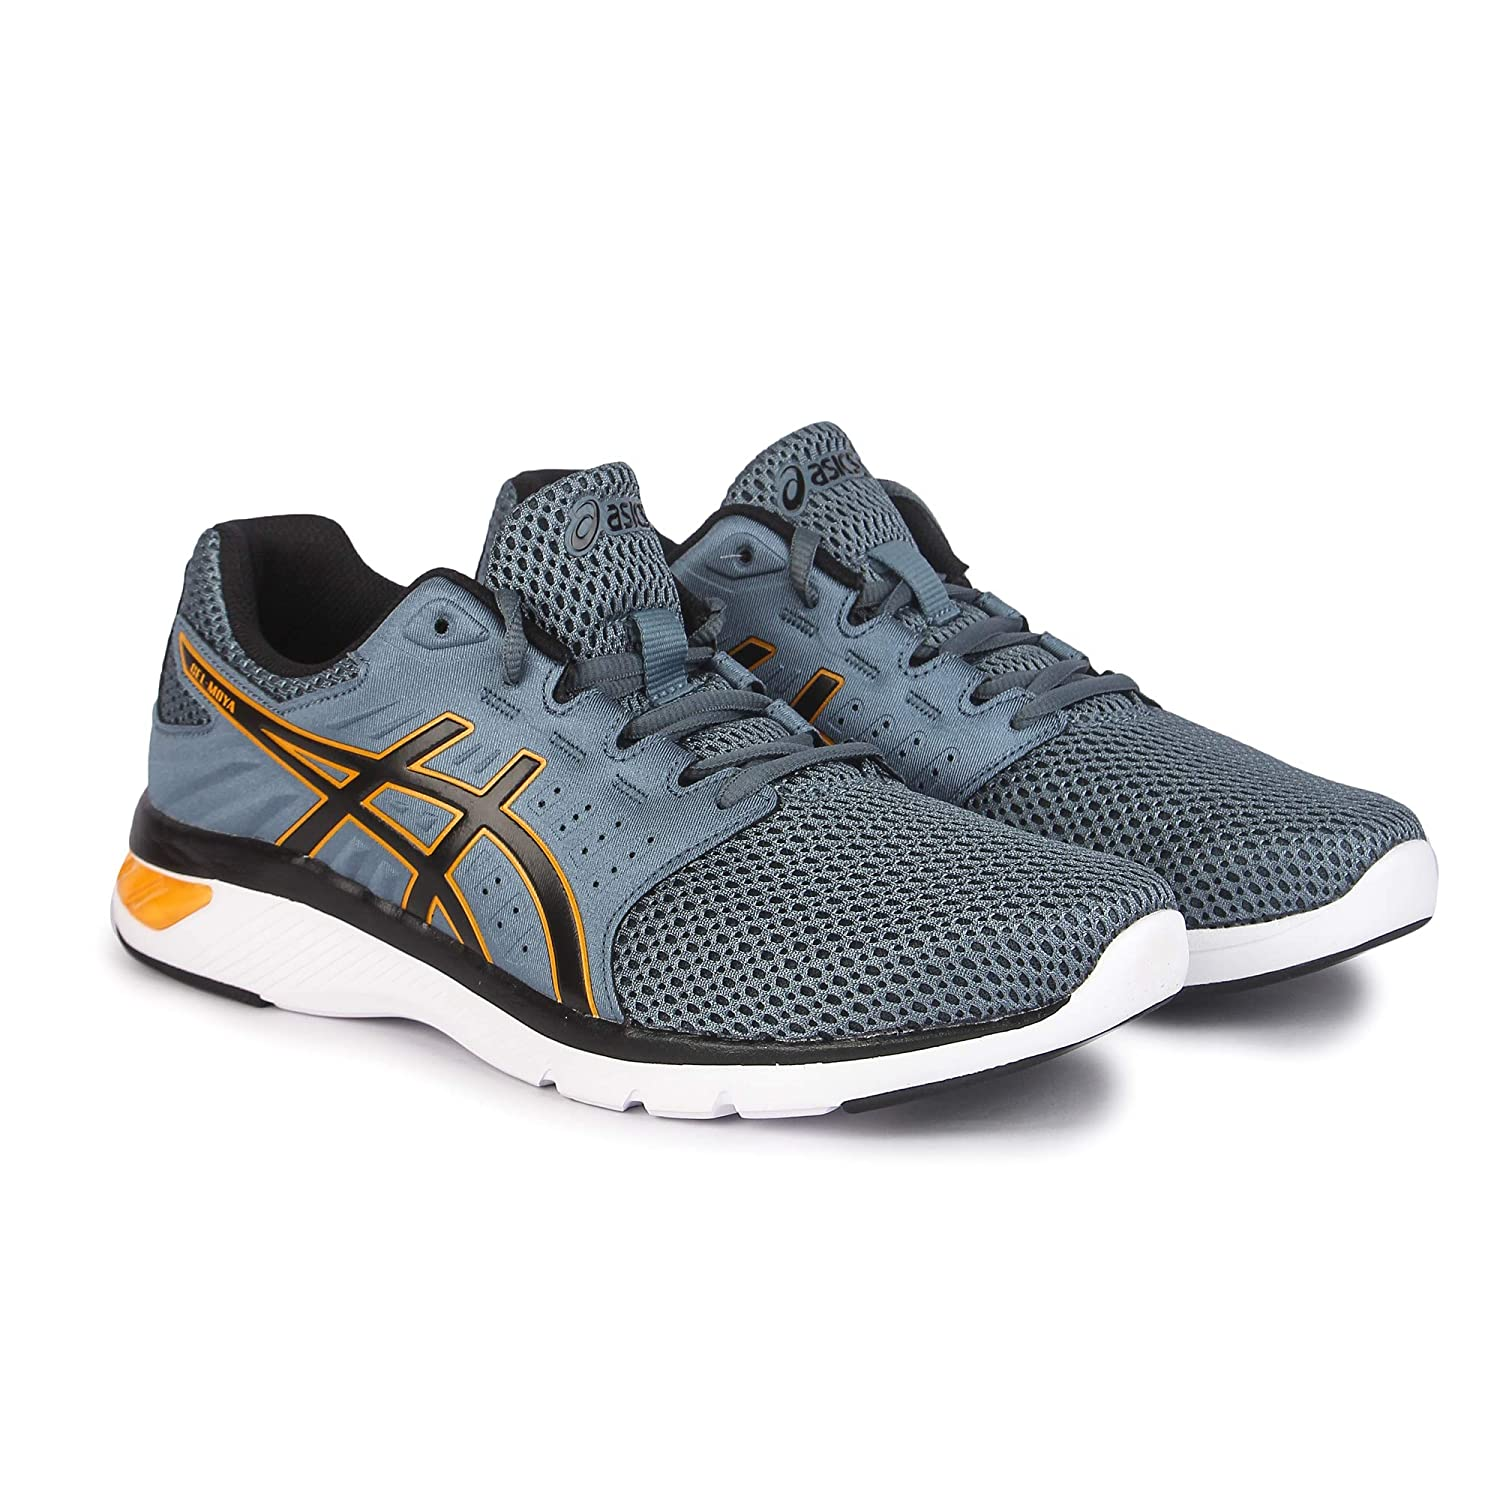 6f74423052a ASICS Men s Gel-Moya Running Shoes  Buy Online at Low Prices in India -  Amazon.in